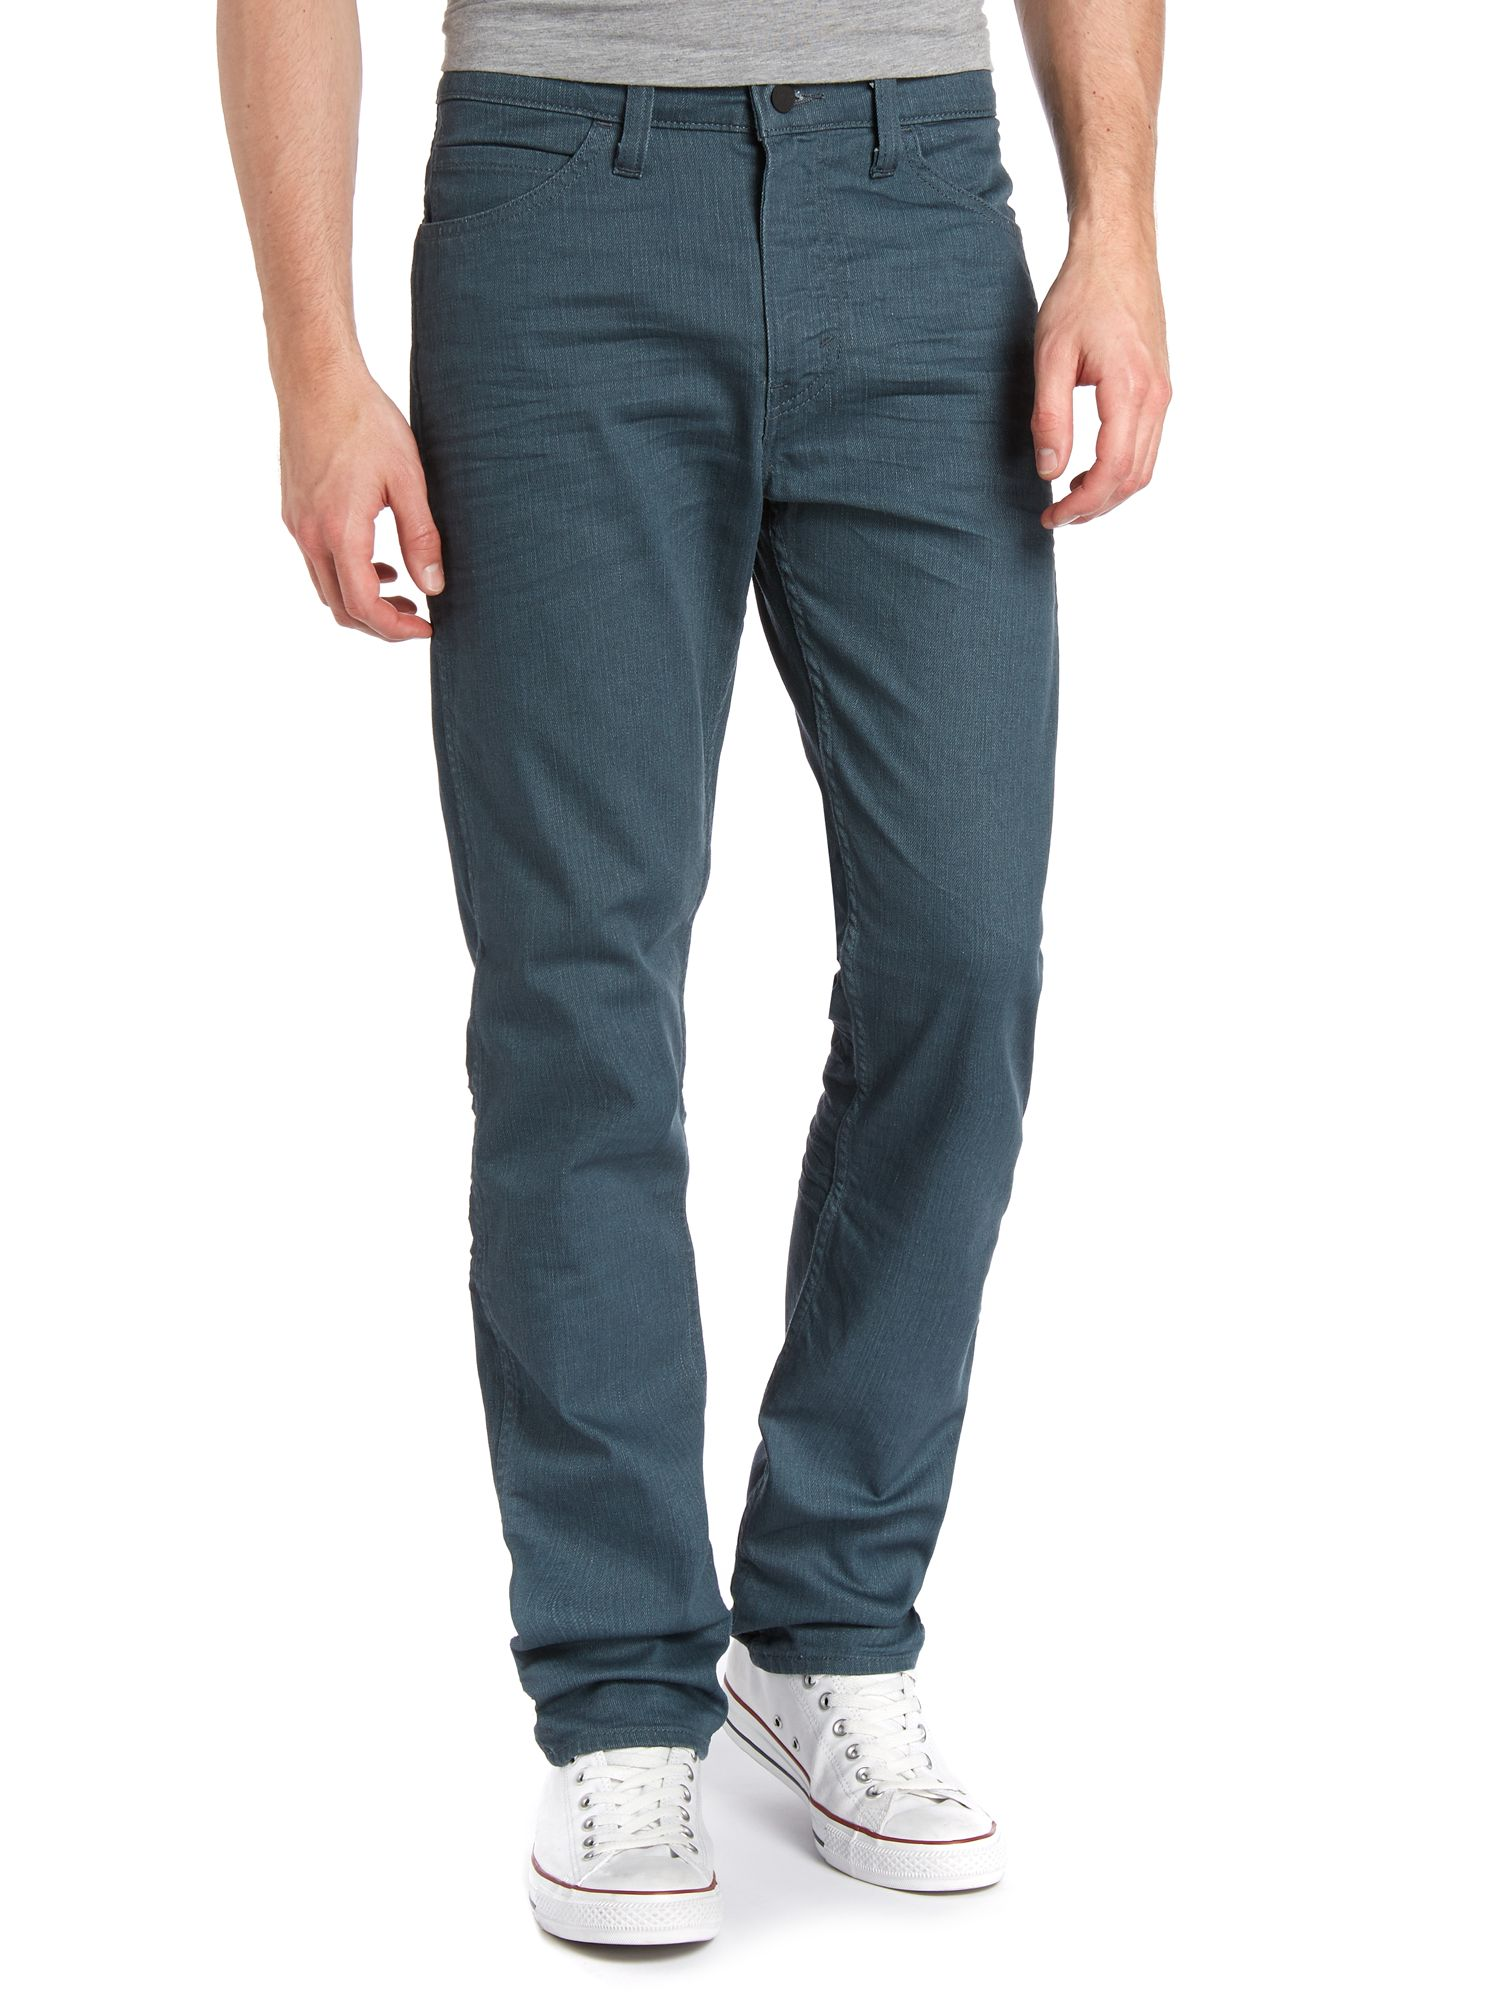 Line 8 508 tapered dark wash jeans